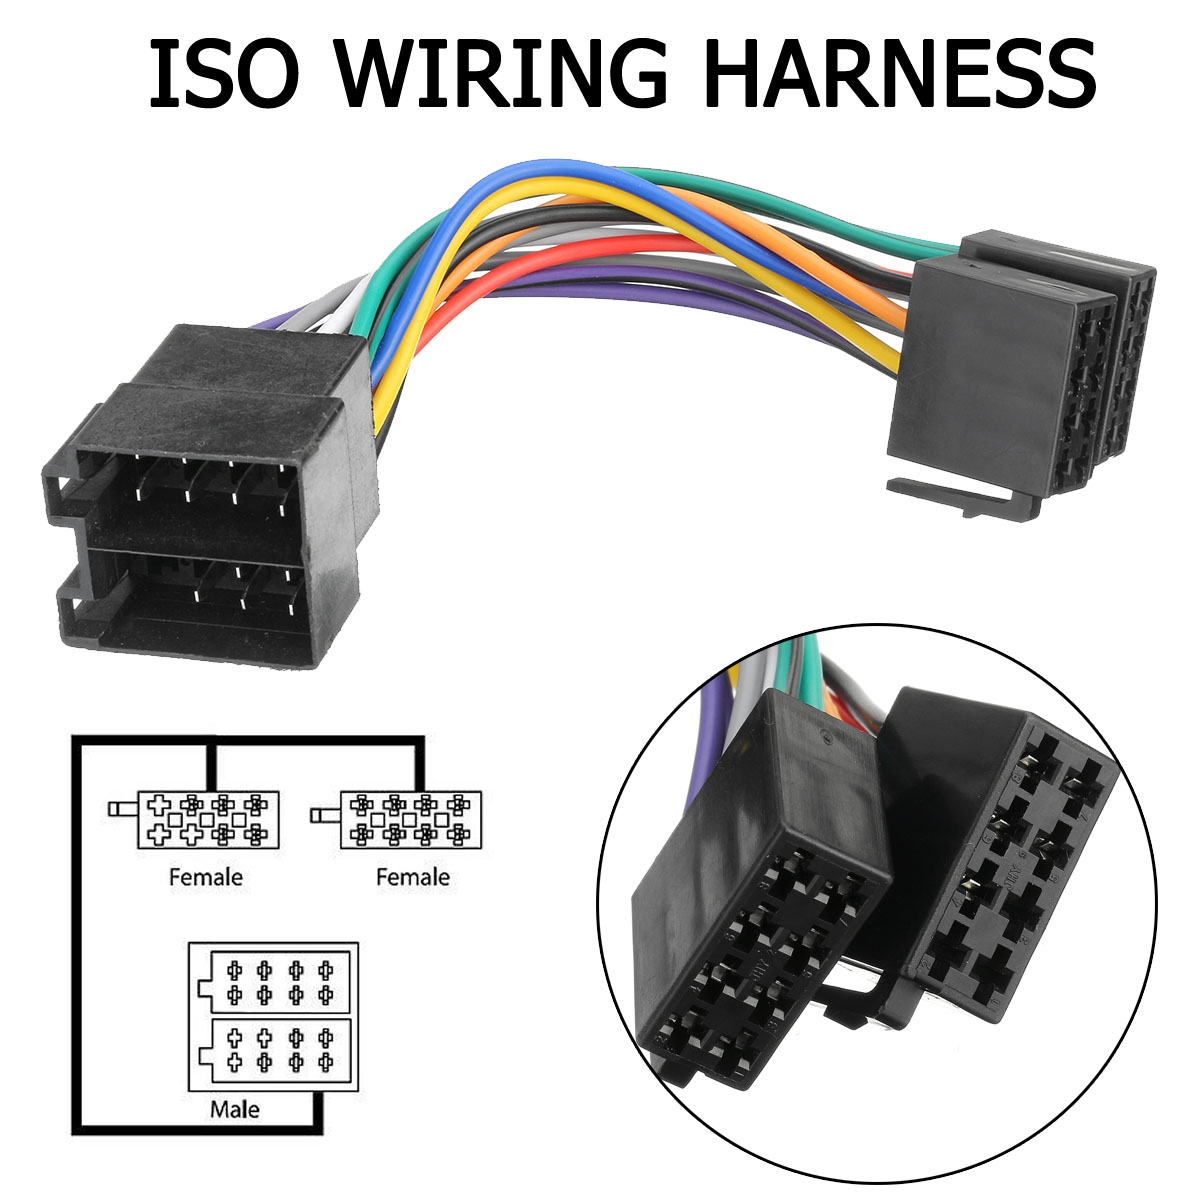 Audew Car Stereo Radio Player ISO Wiring Harness Connector For Holden on trailer plugs, trailer brakes, trailer mounting brackets, trailer fuses, trailer hitch harness, trailer generator,